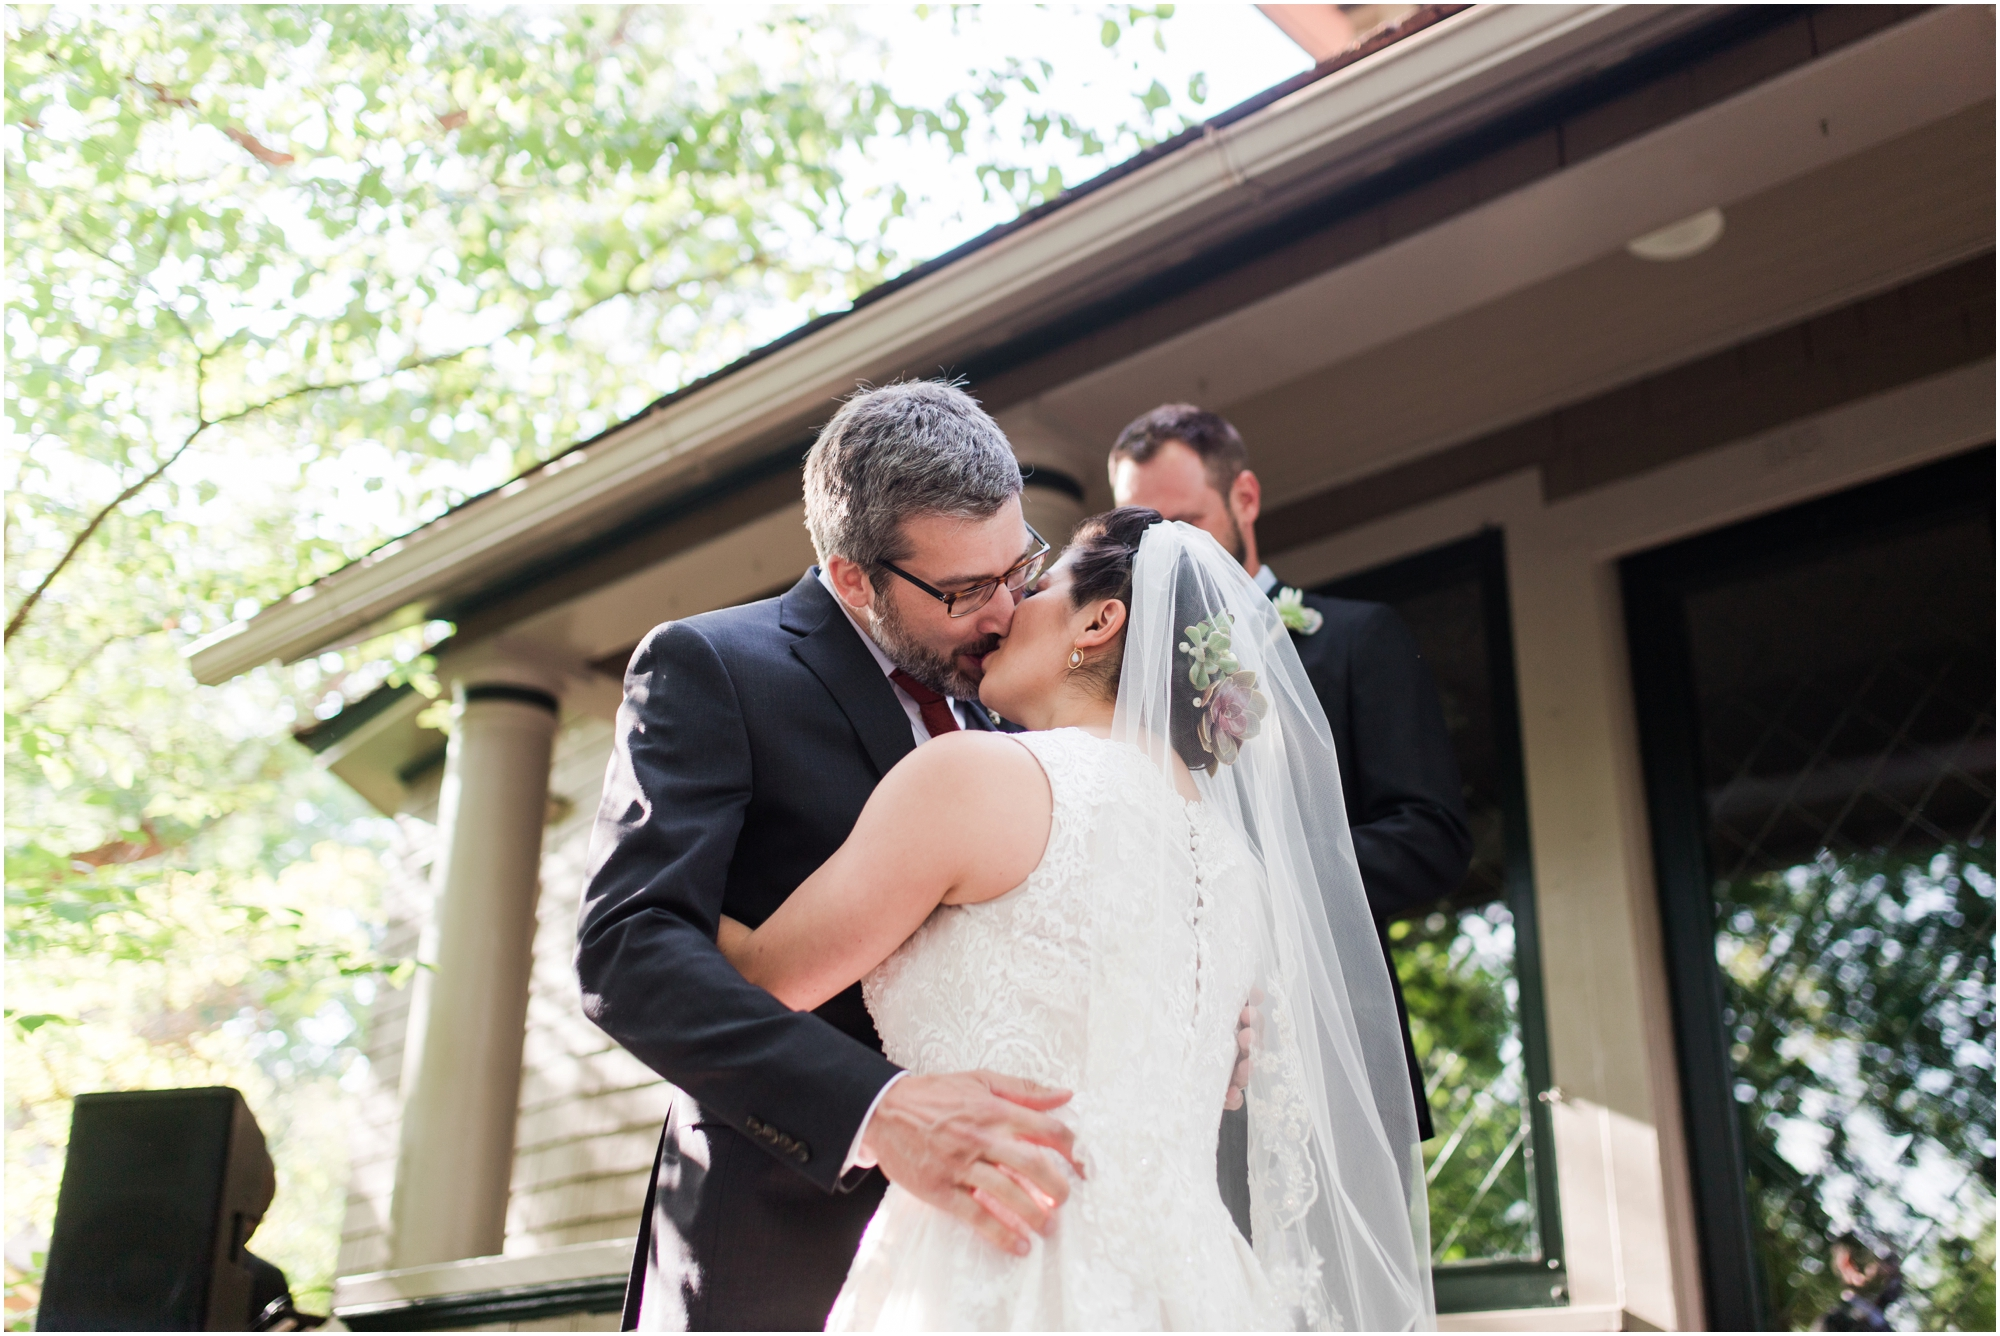 Garden wedding in Ellensburg, WA. Photos by Briana Calderon Photography based in the greater Seattle-Tacoma Area._1348.jpg